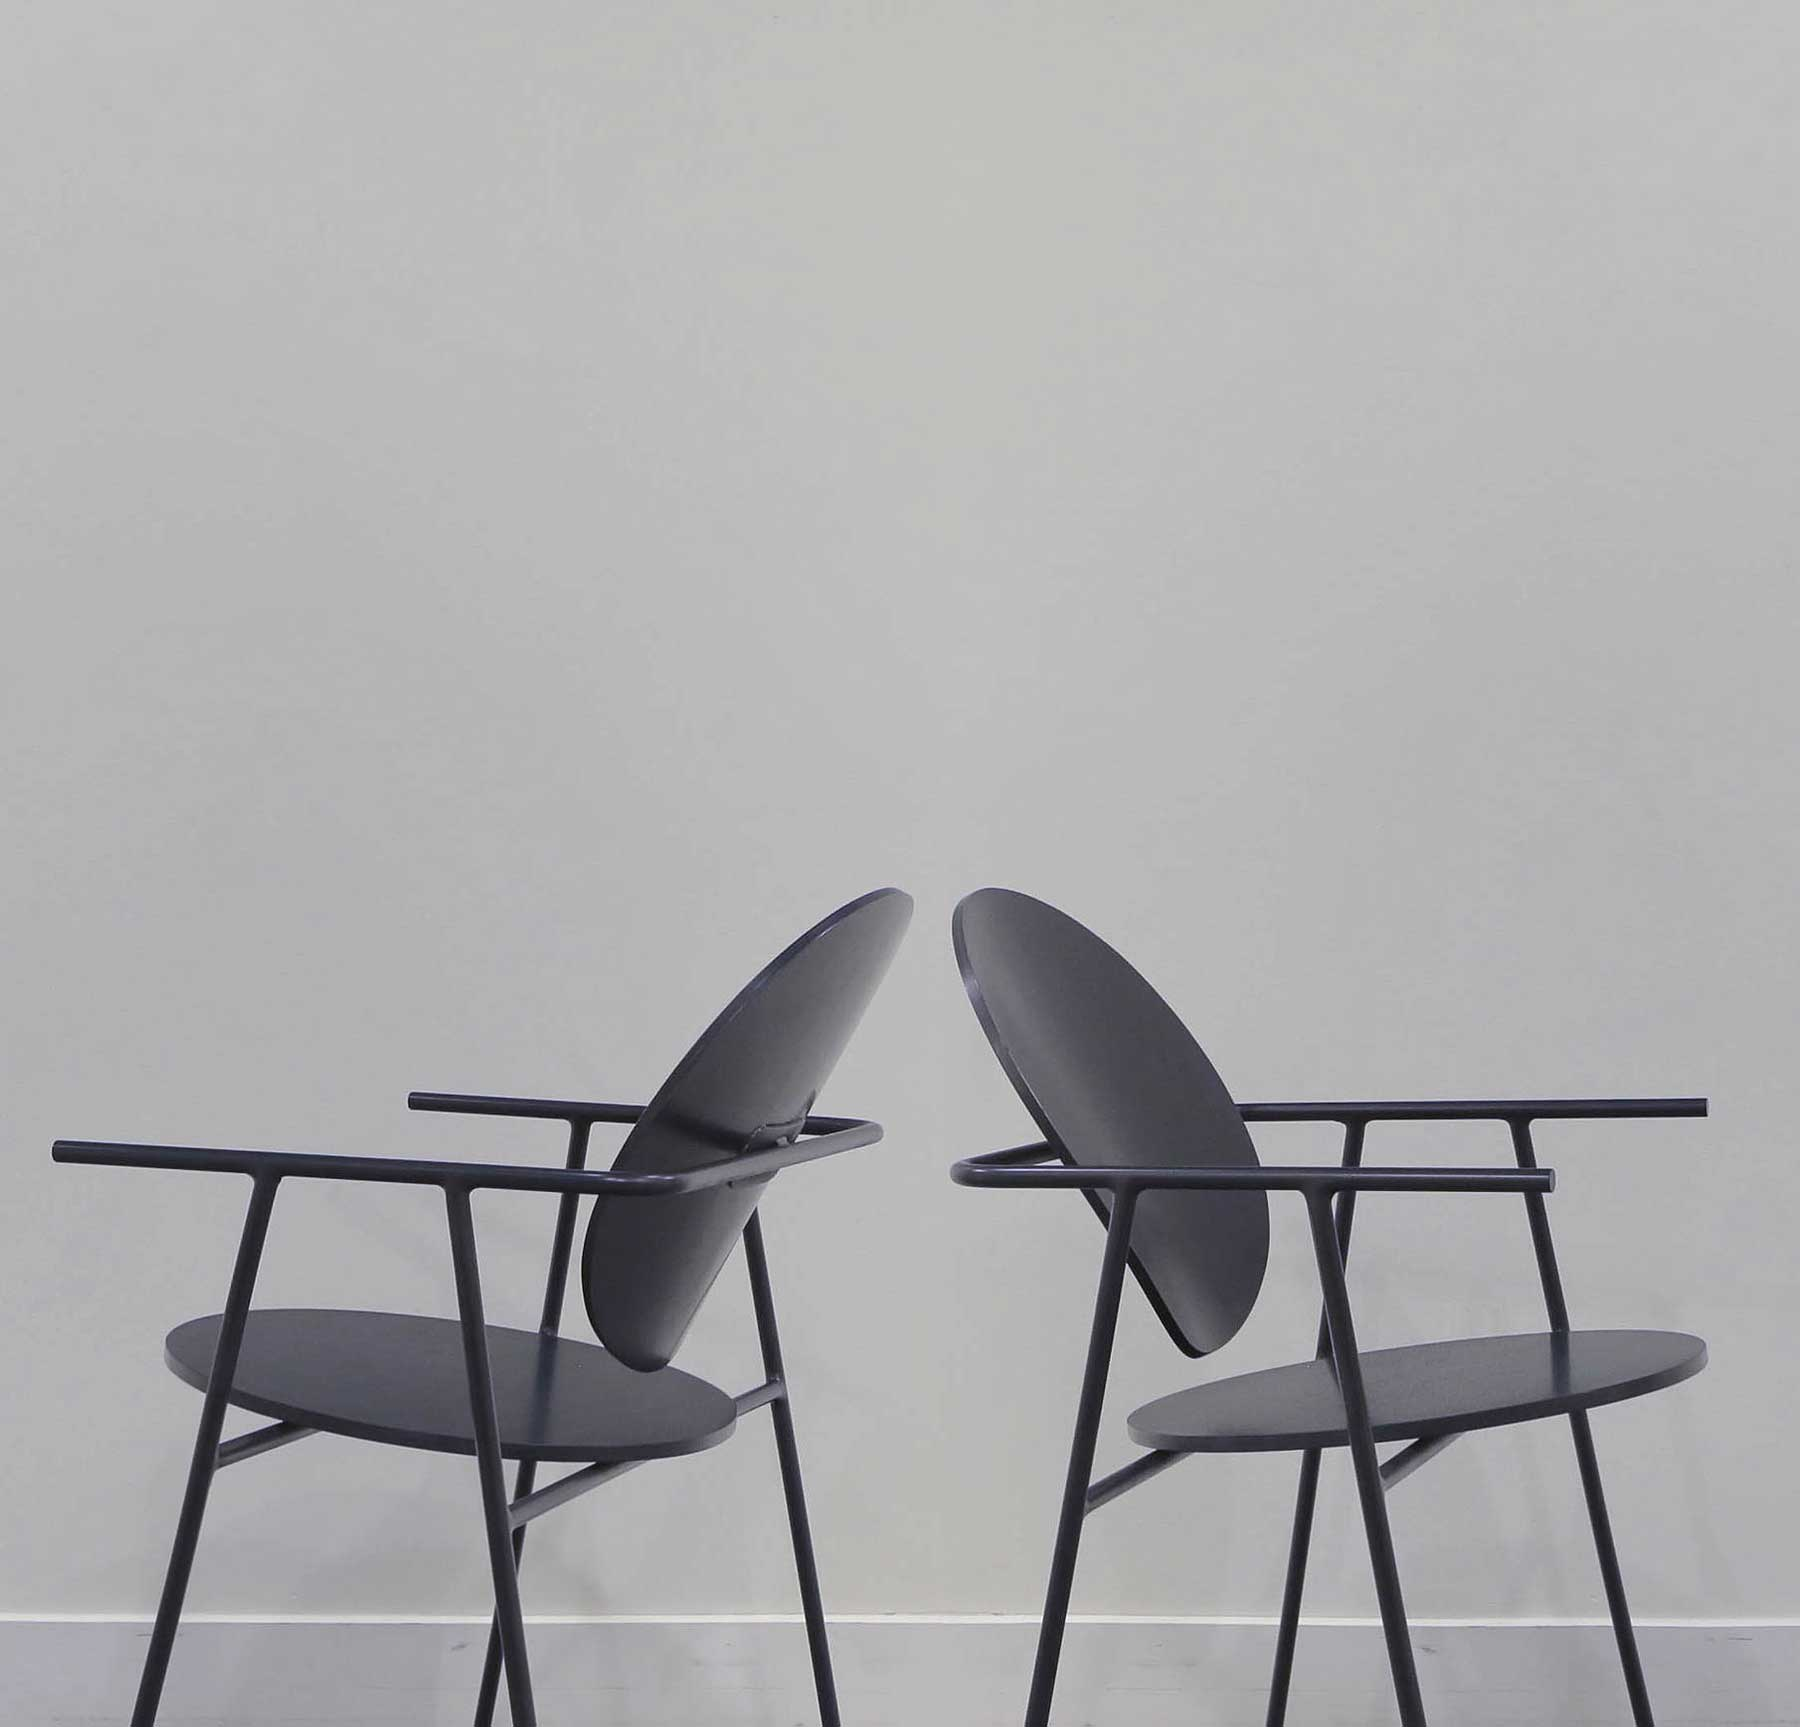 Two Circles Chair by Kebei Li.